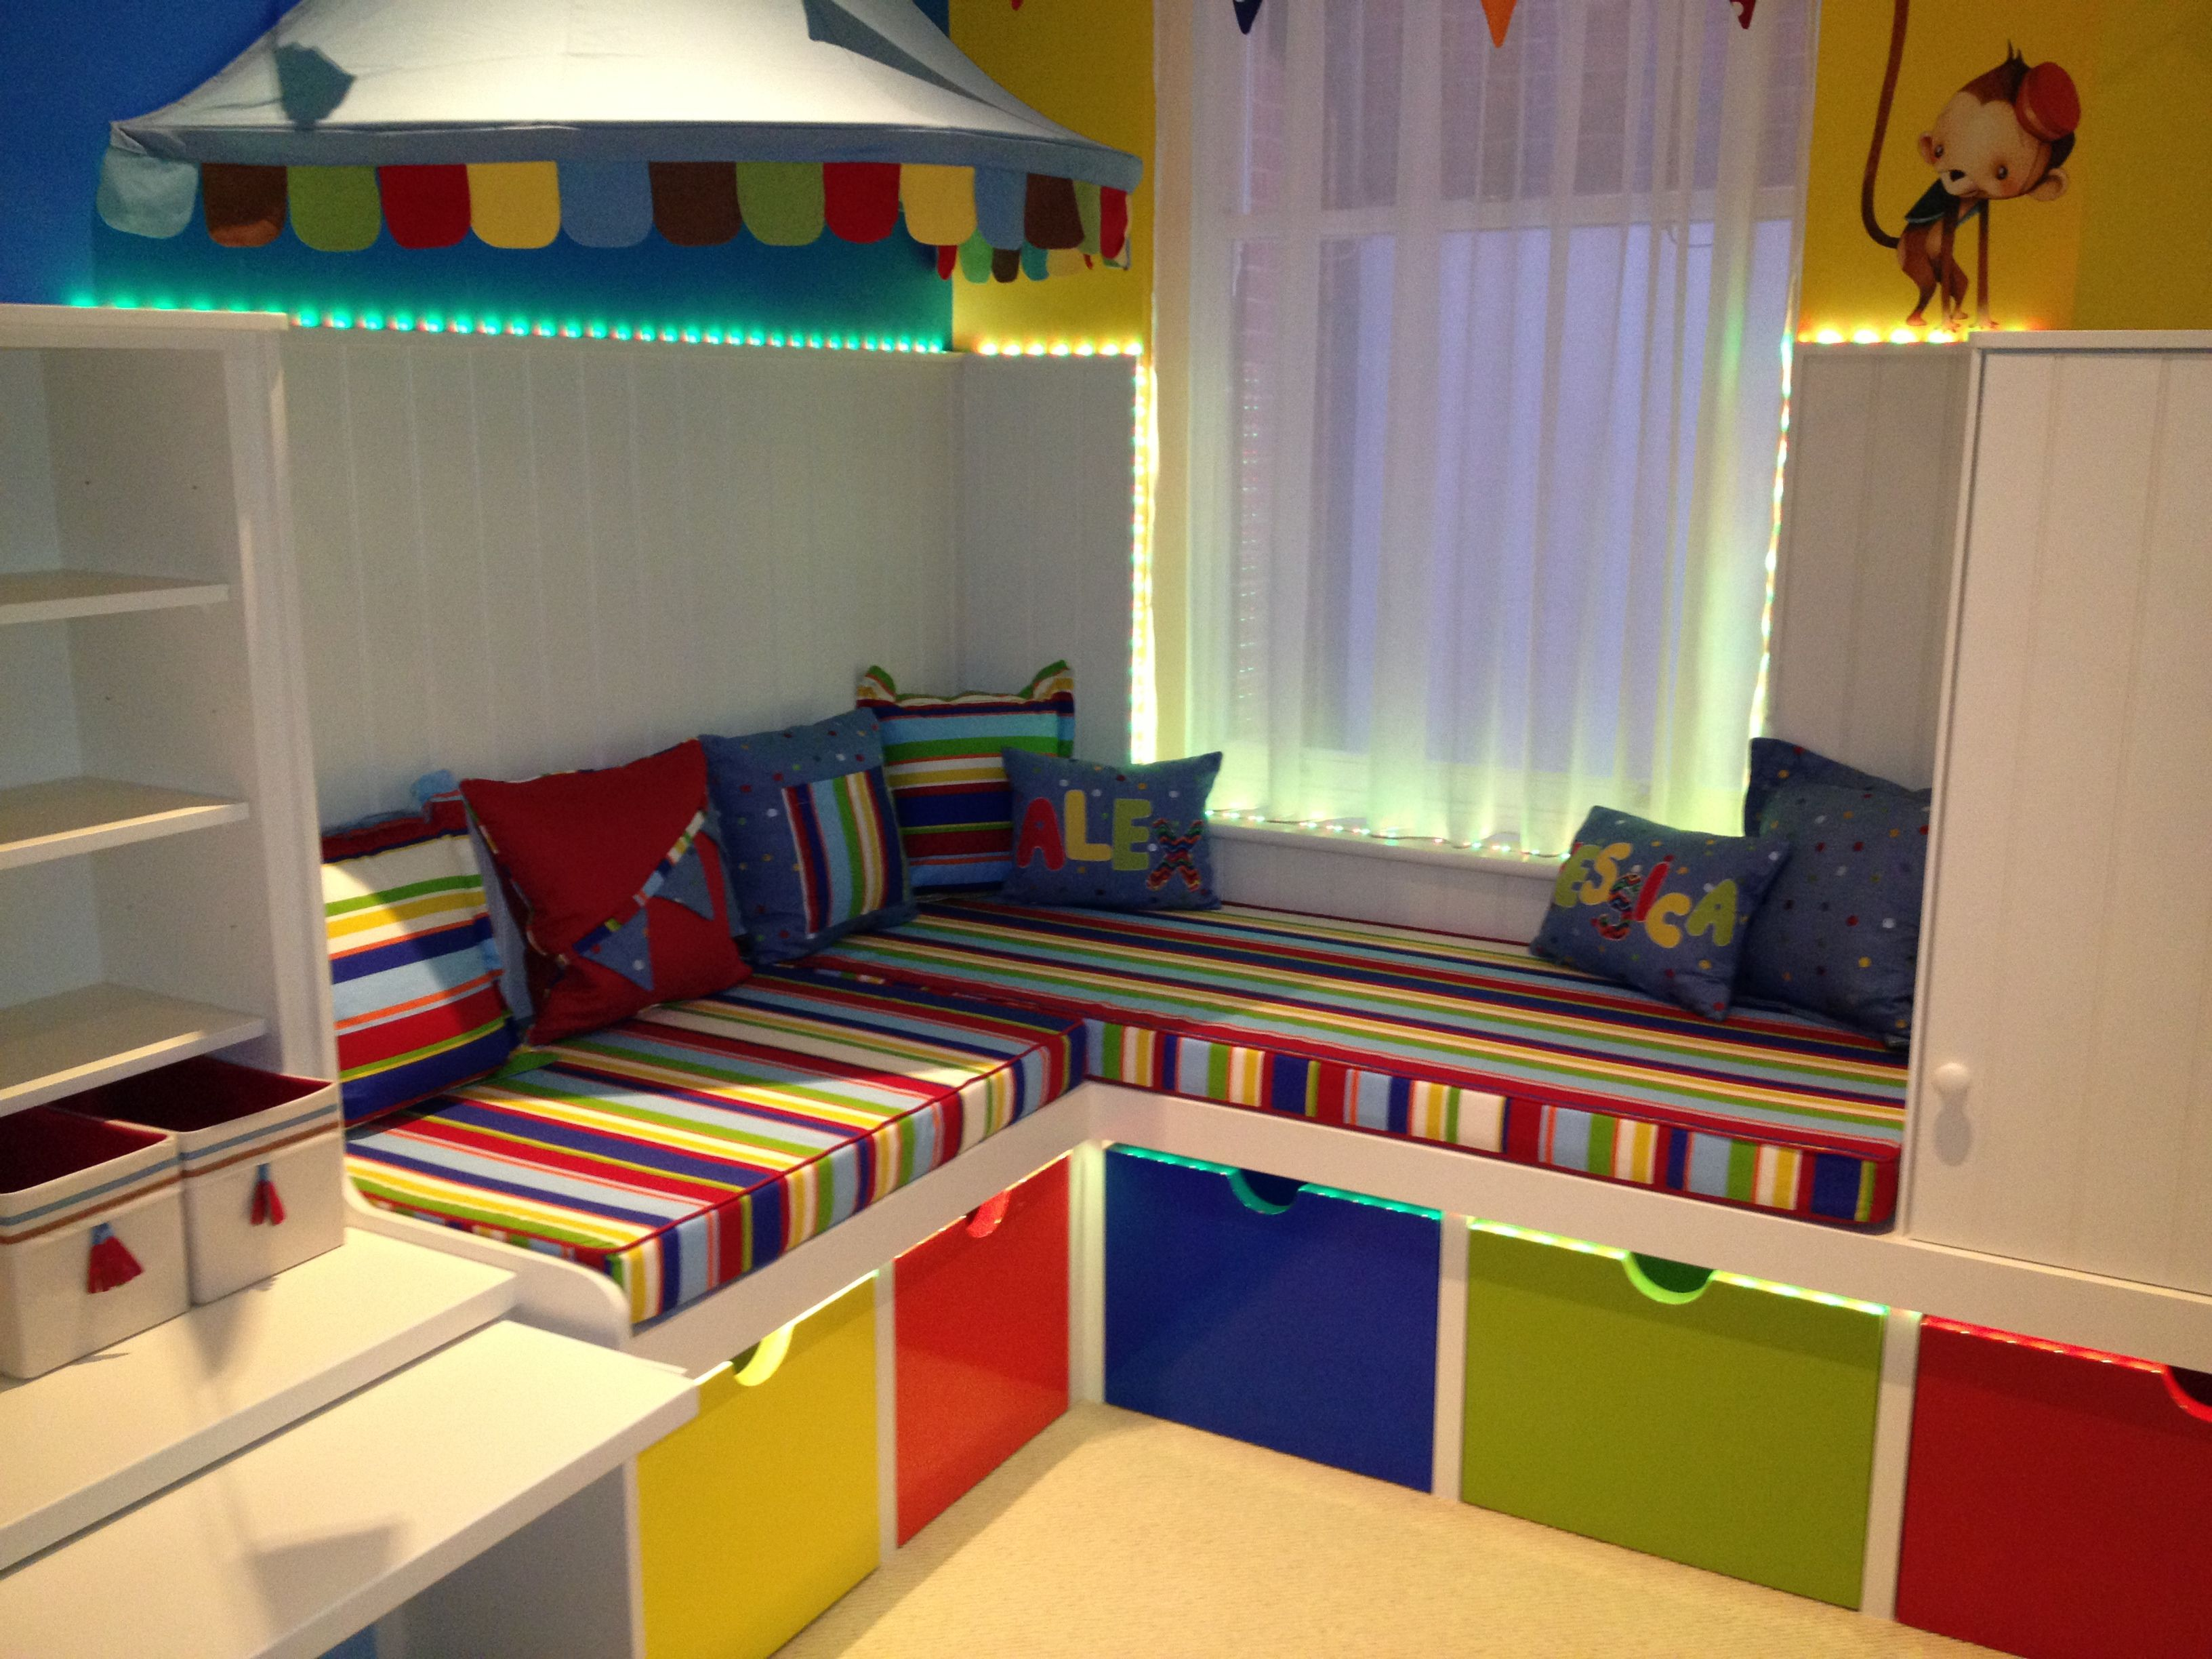 stunning house design featuring amazing playroom design ideas mesmerizing simple small kids playroom design with reading nook colorful storage and white - Playroom Design Ideas